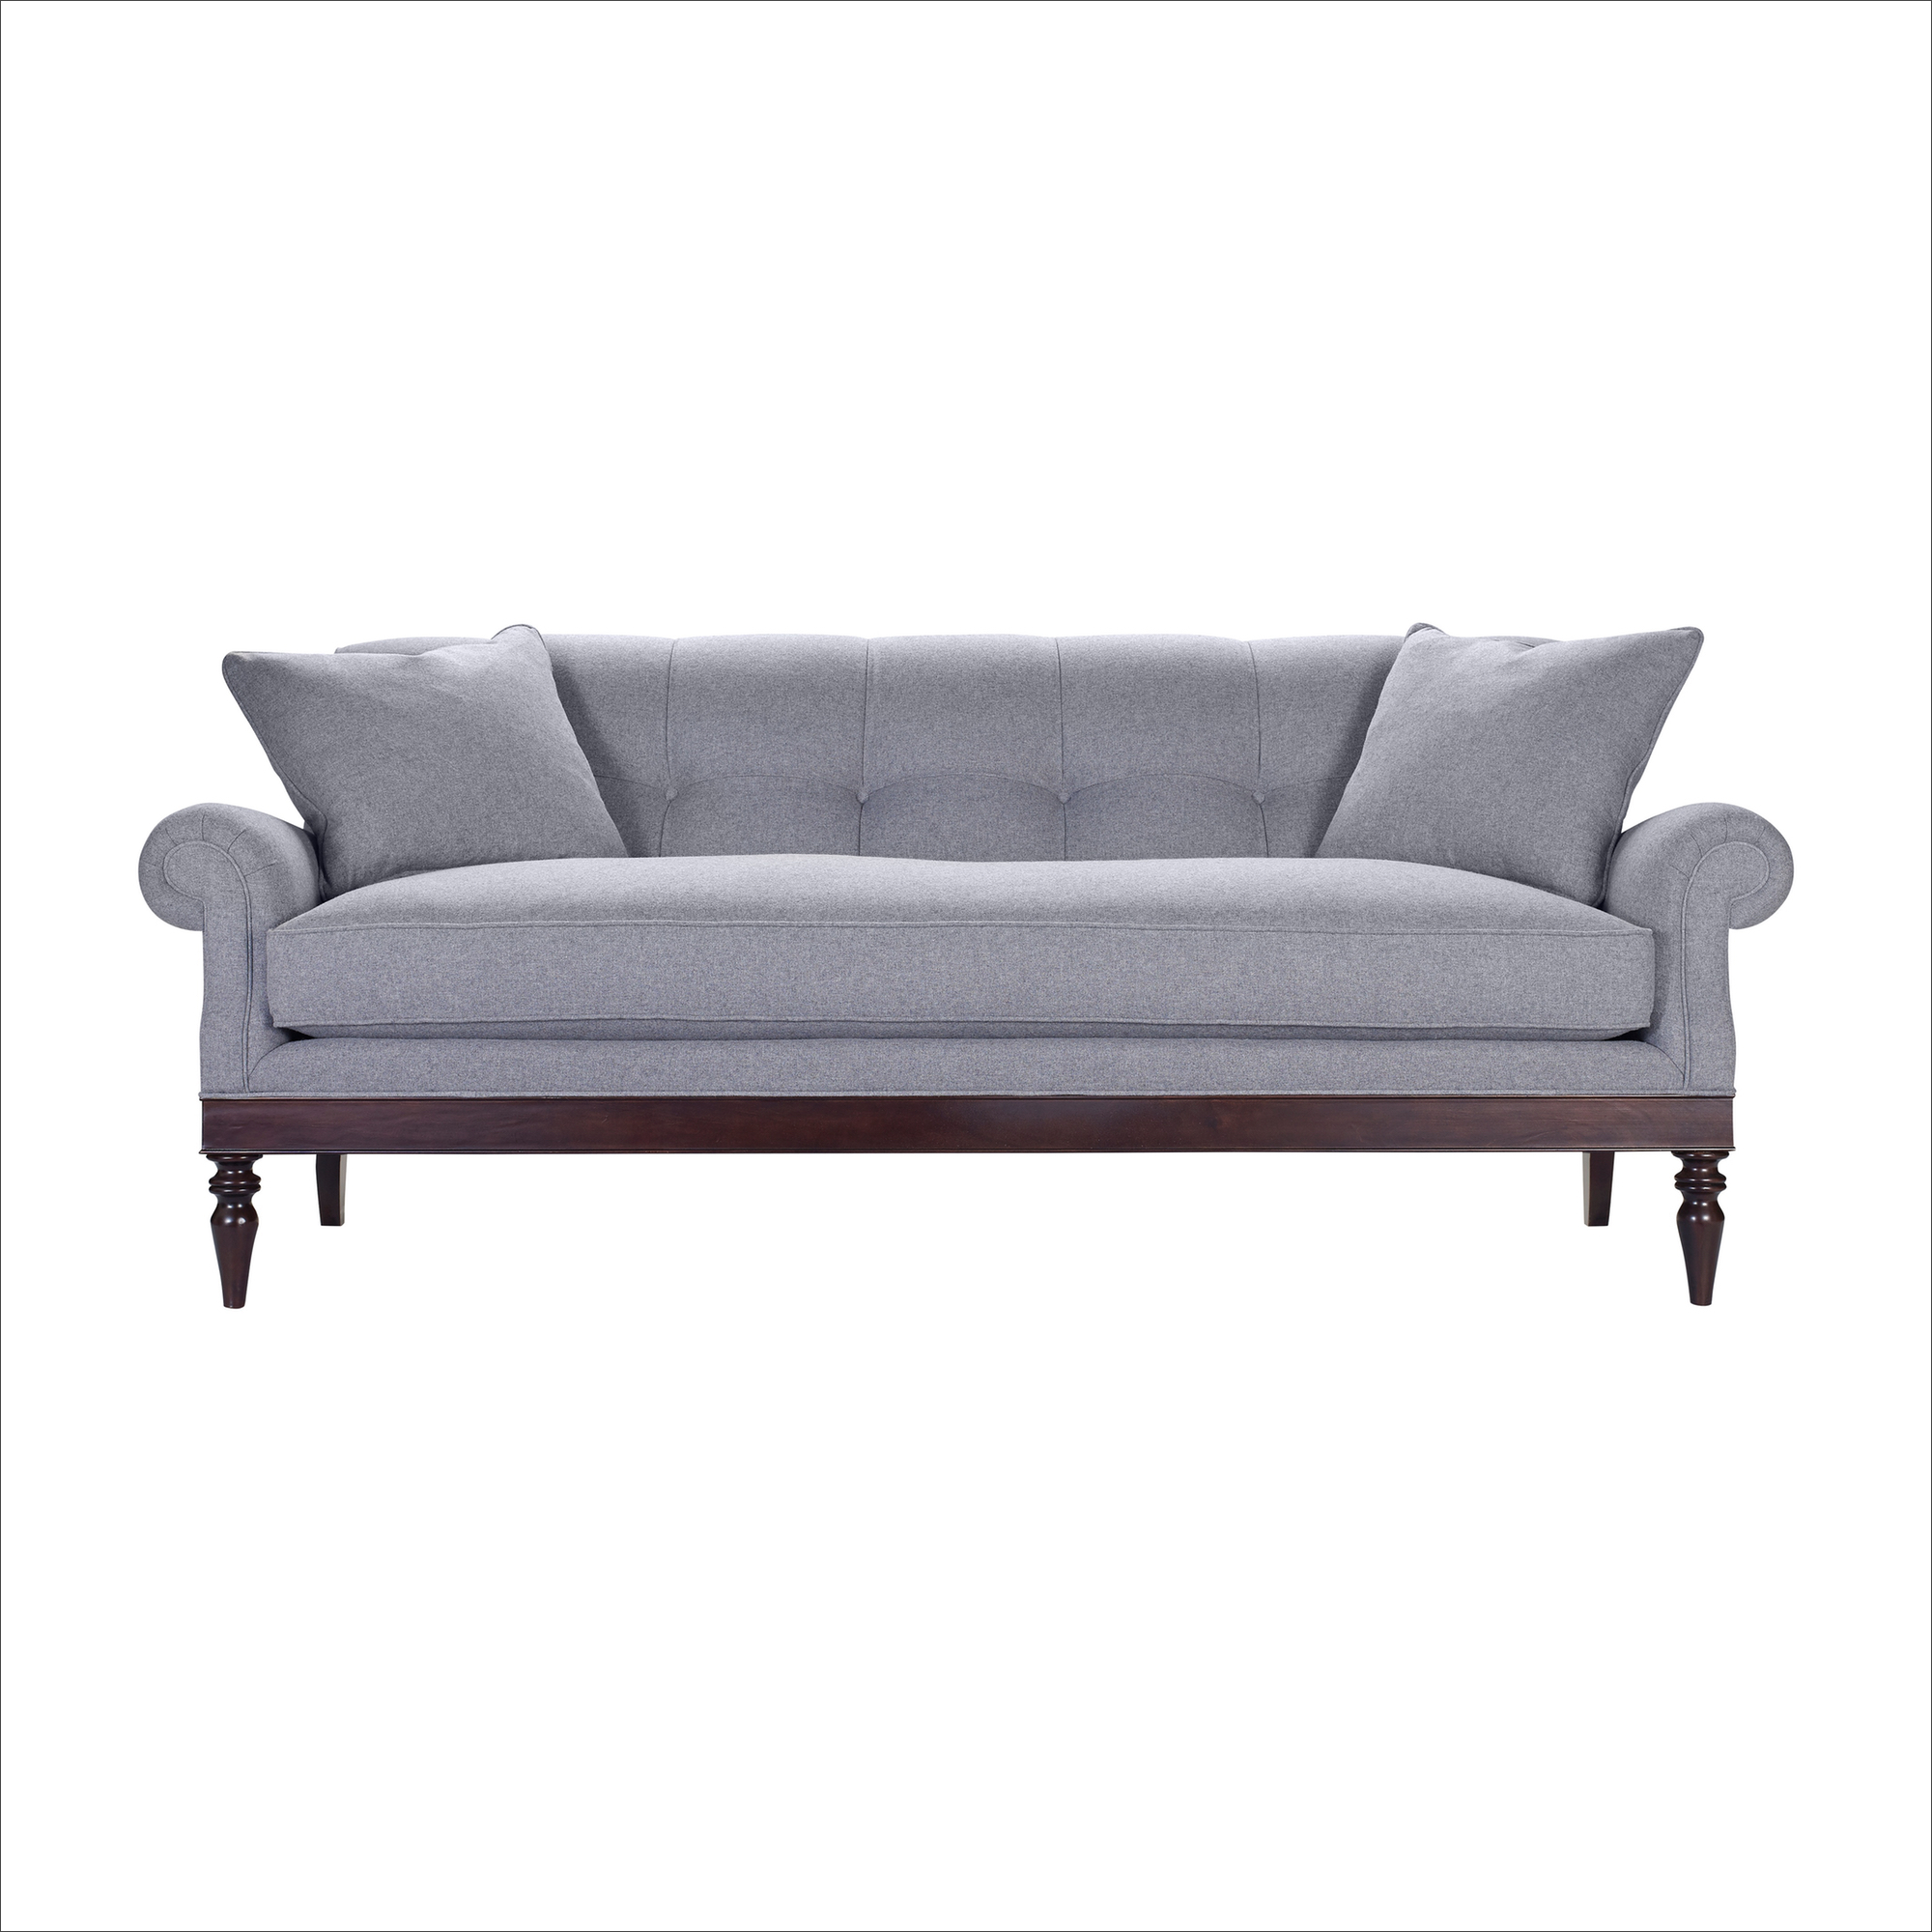 Shonnard Sofa By Hickory Chair